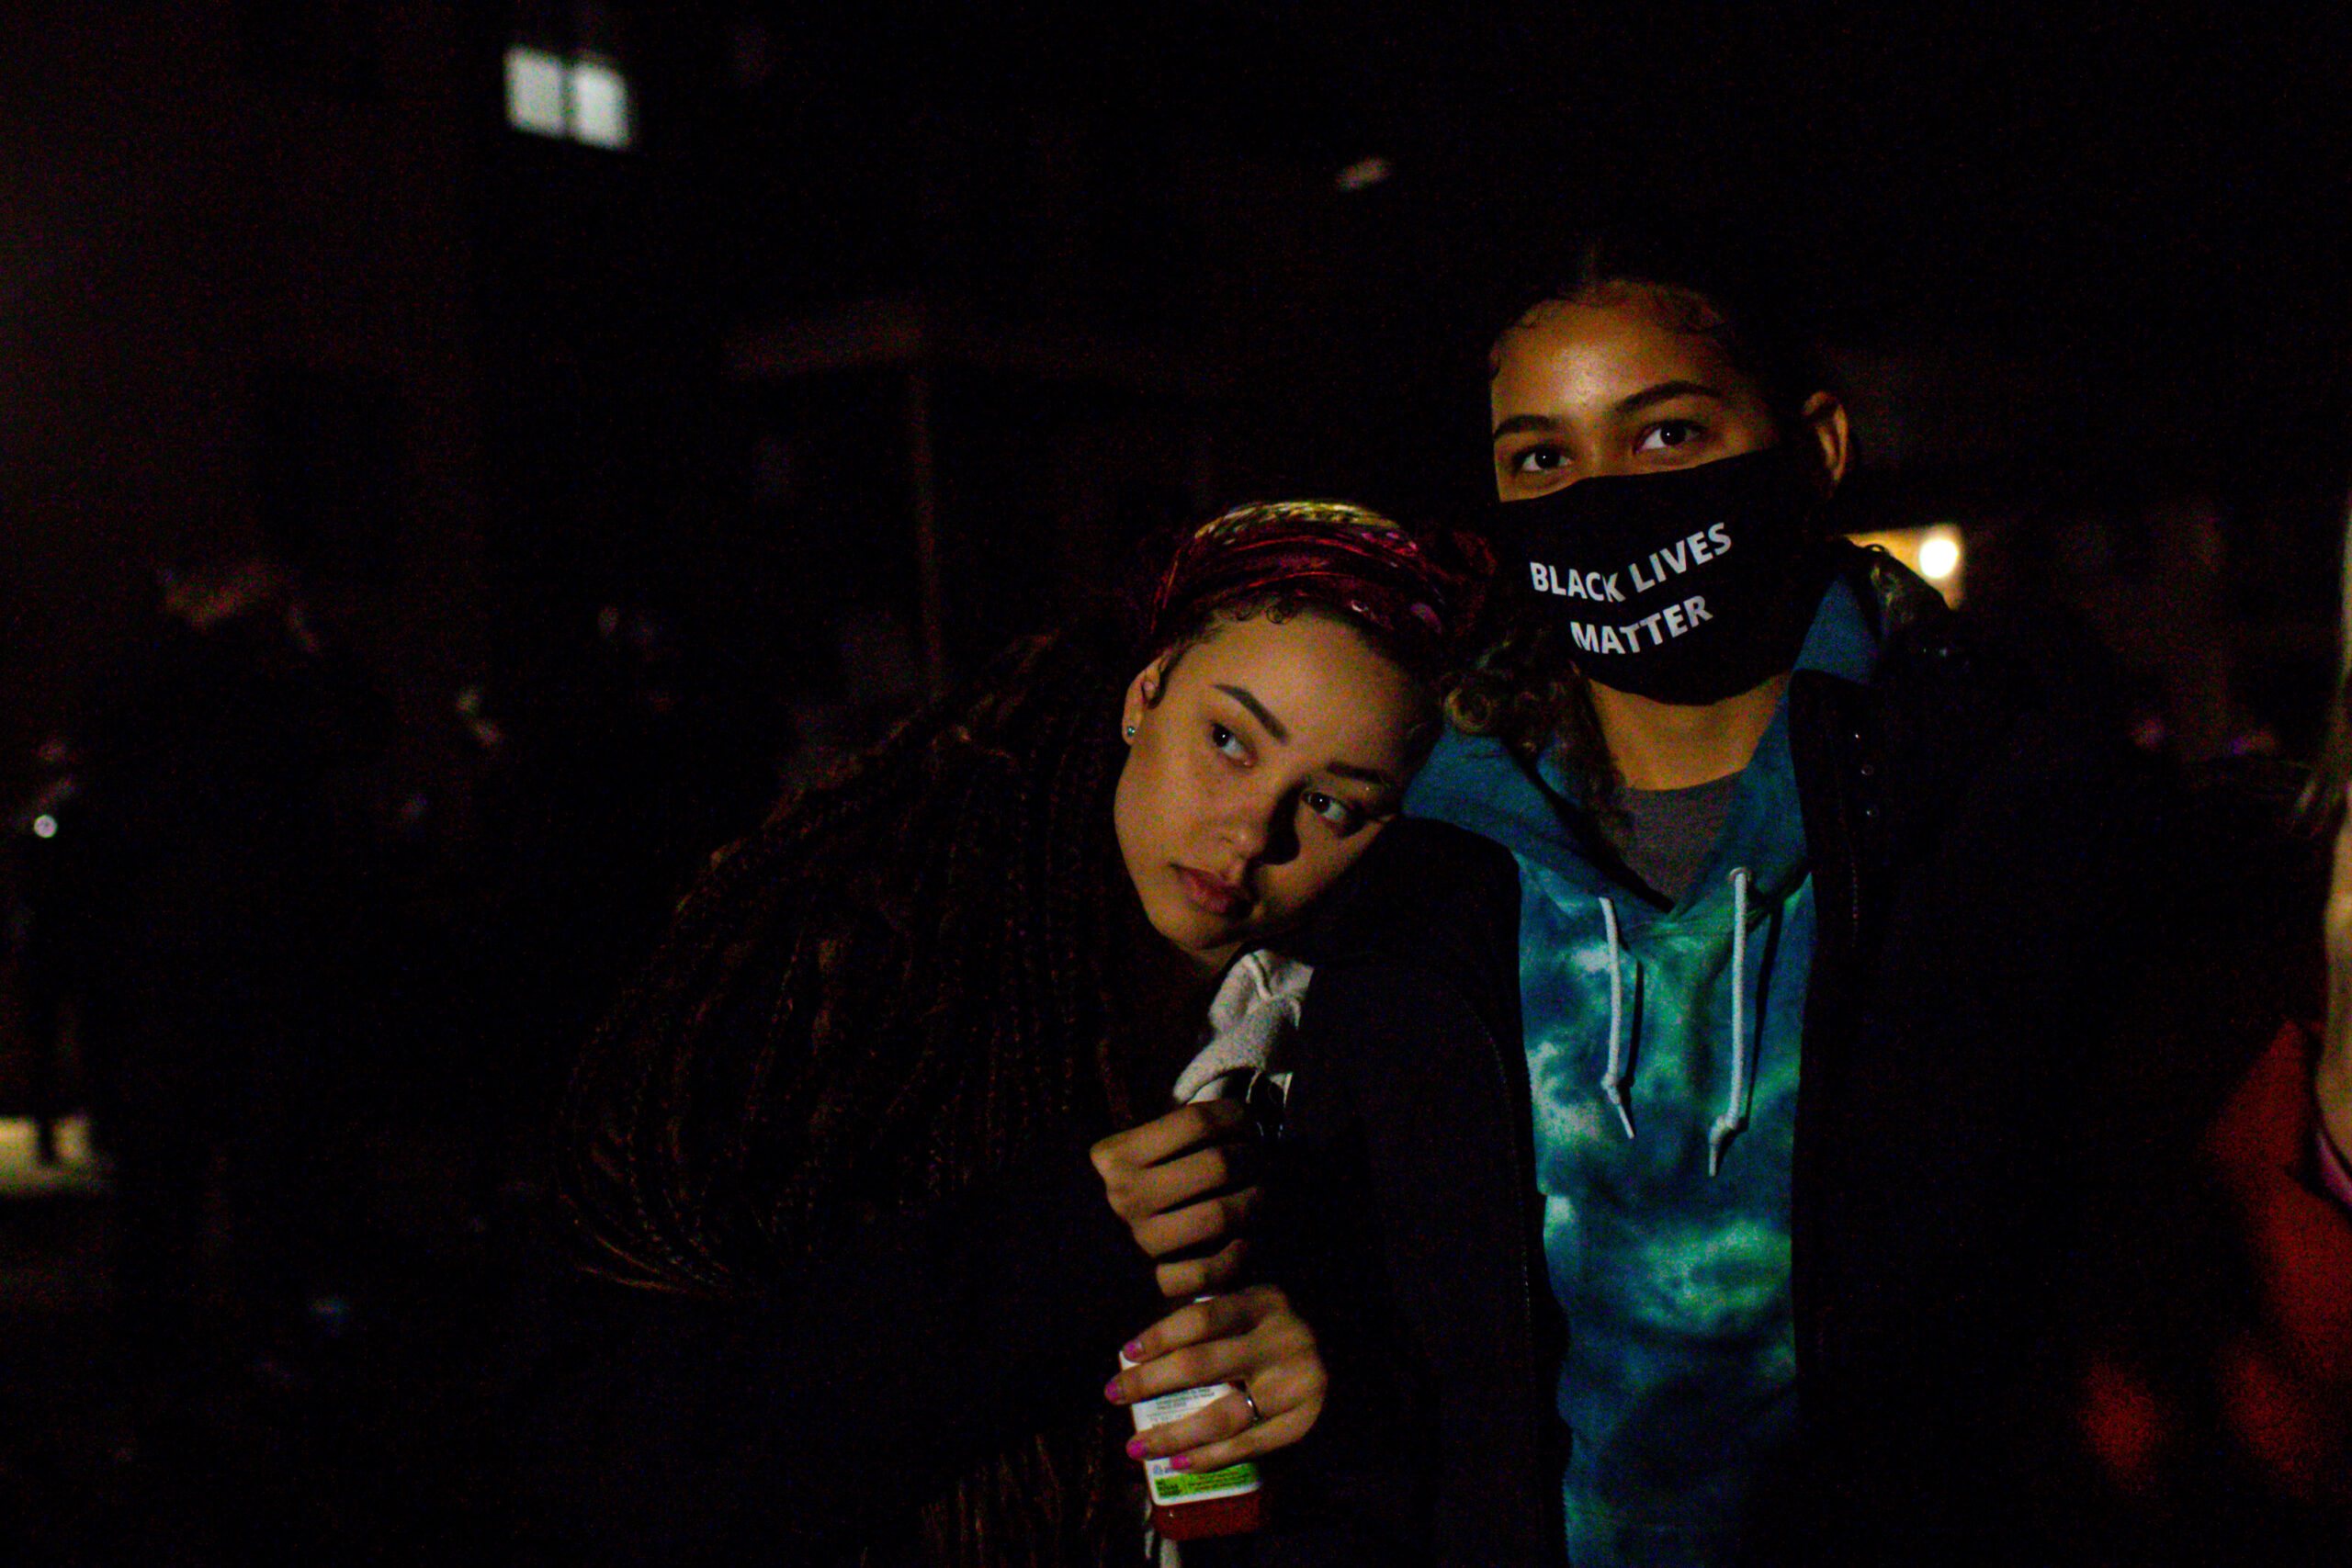 More clashes, fewer arrests on 4th night of protests in Brooklyn Center